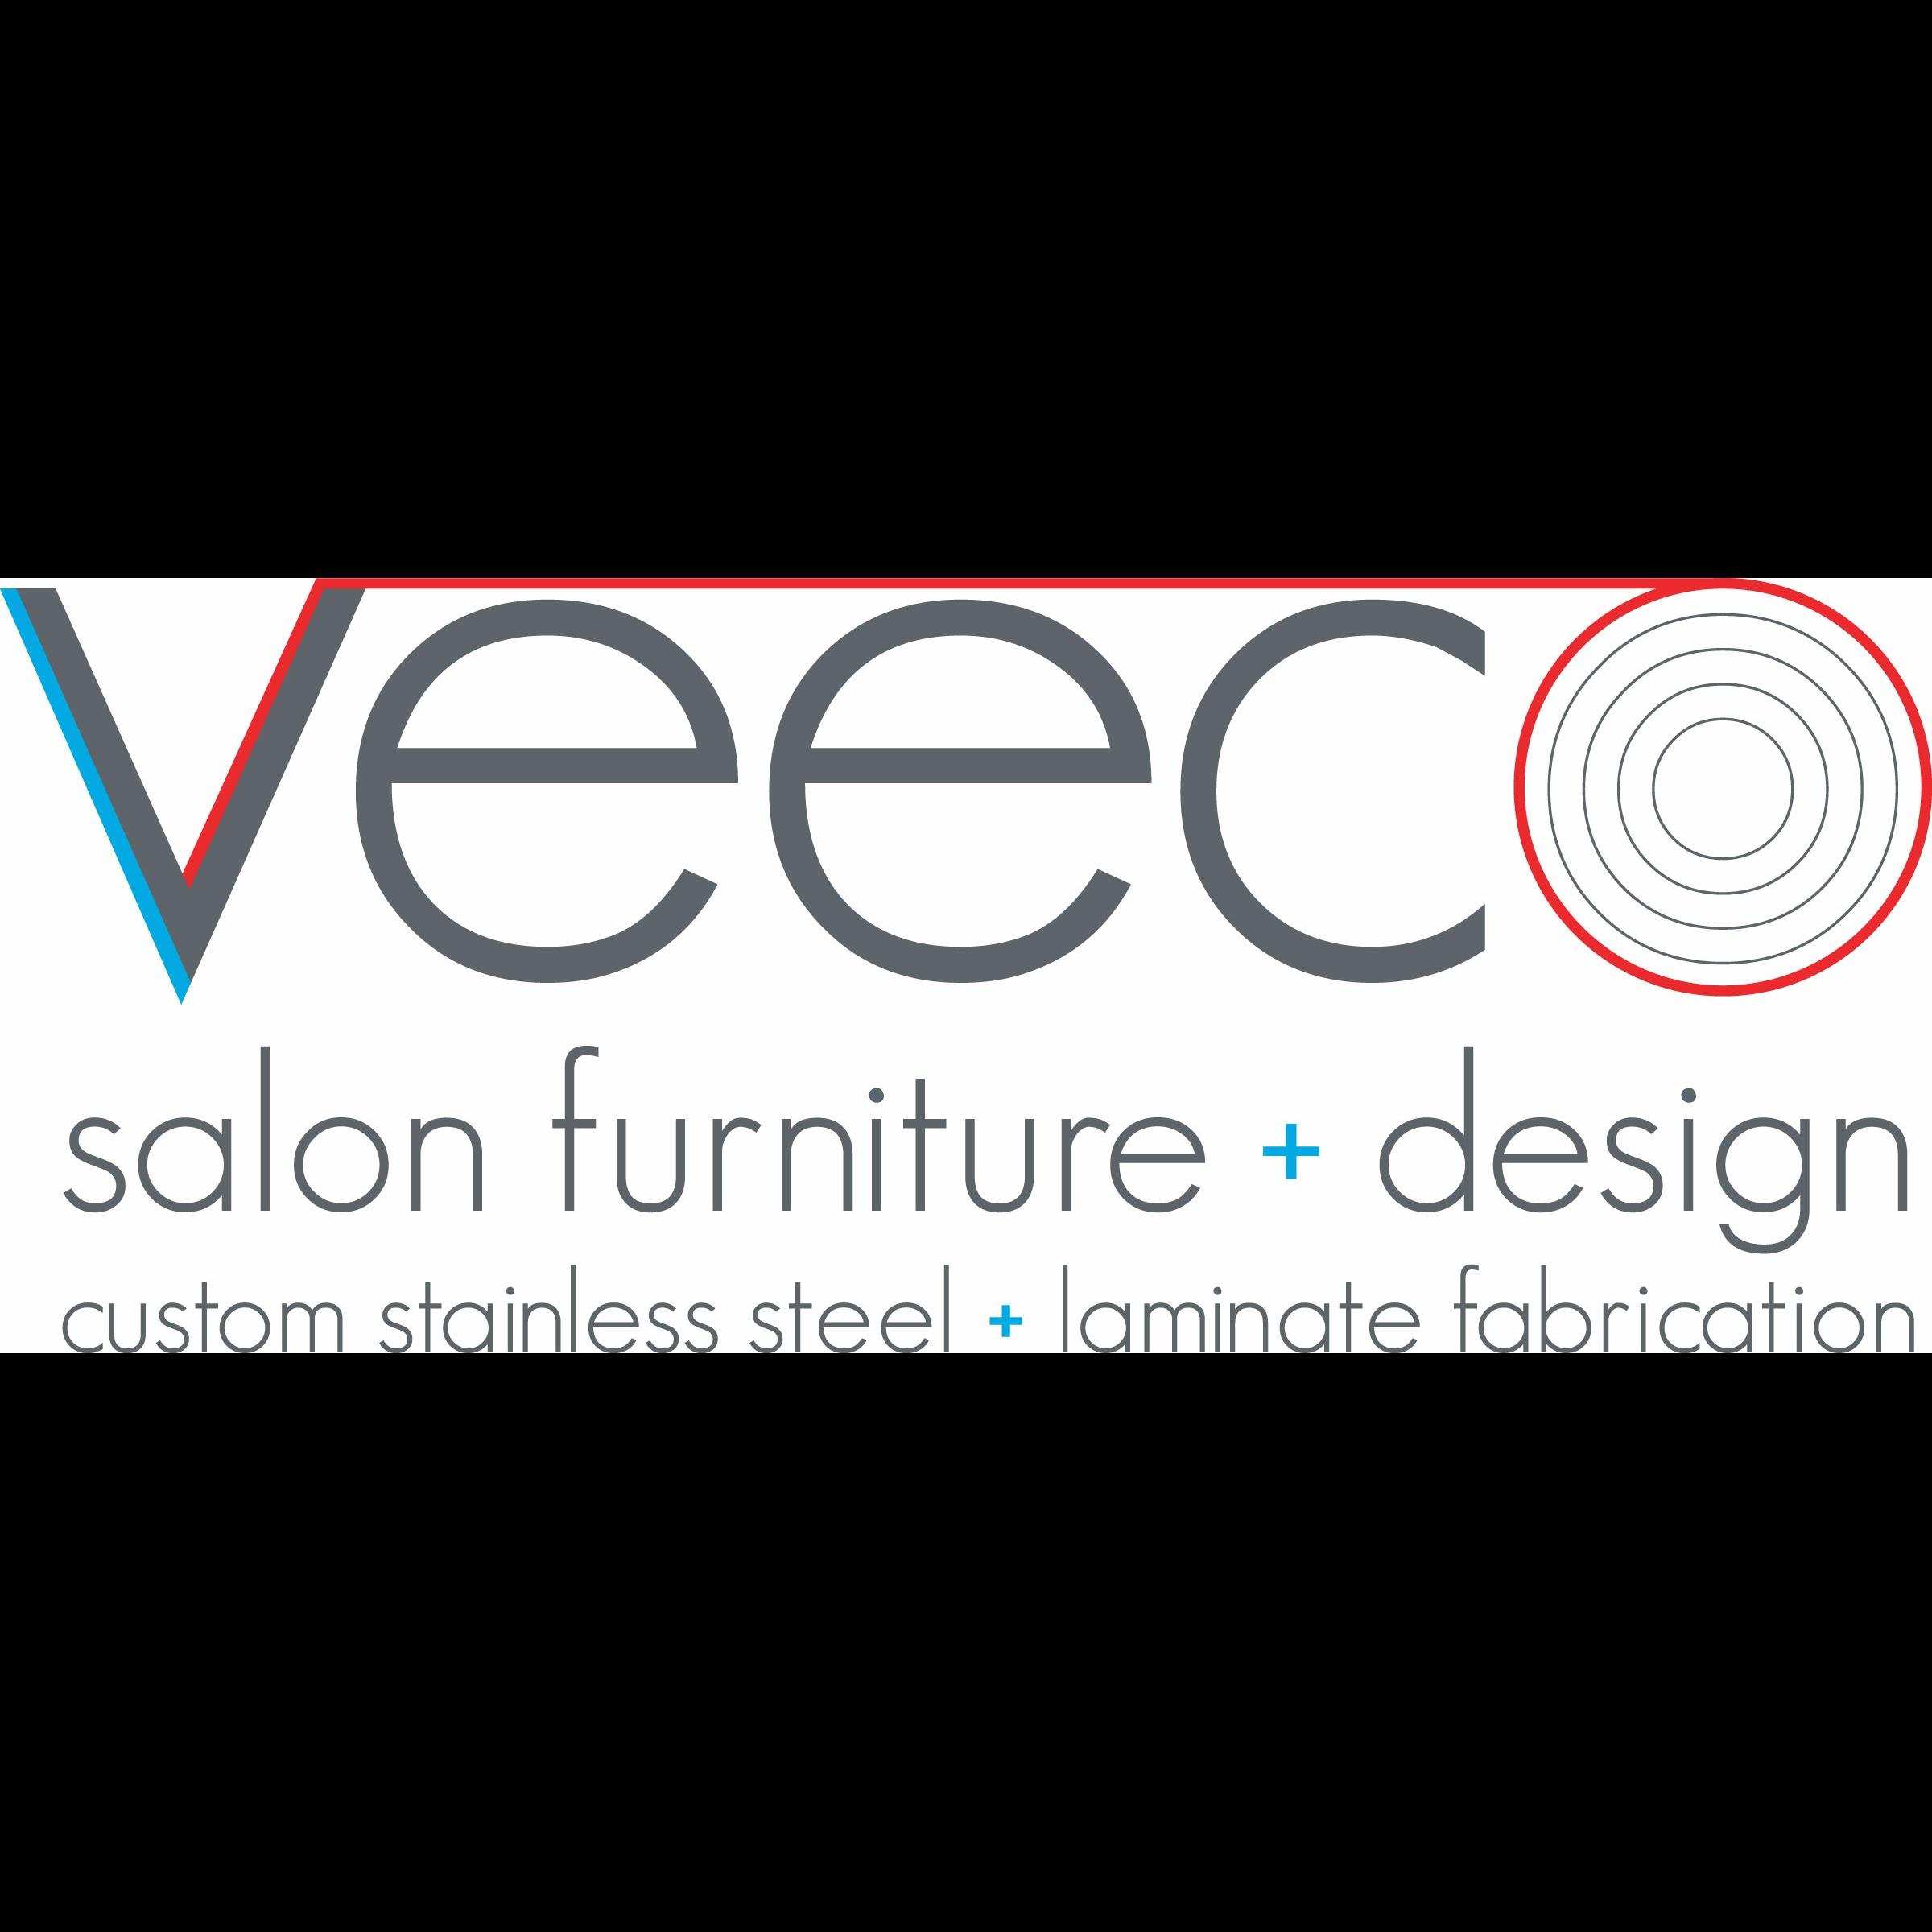 Veeco salon furniture design veeco manufacturing for Furniture xo out of business